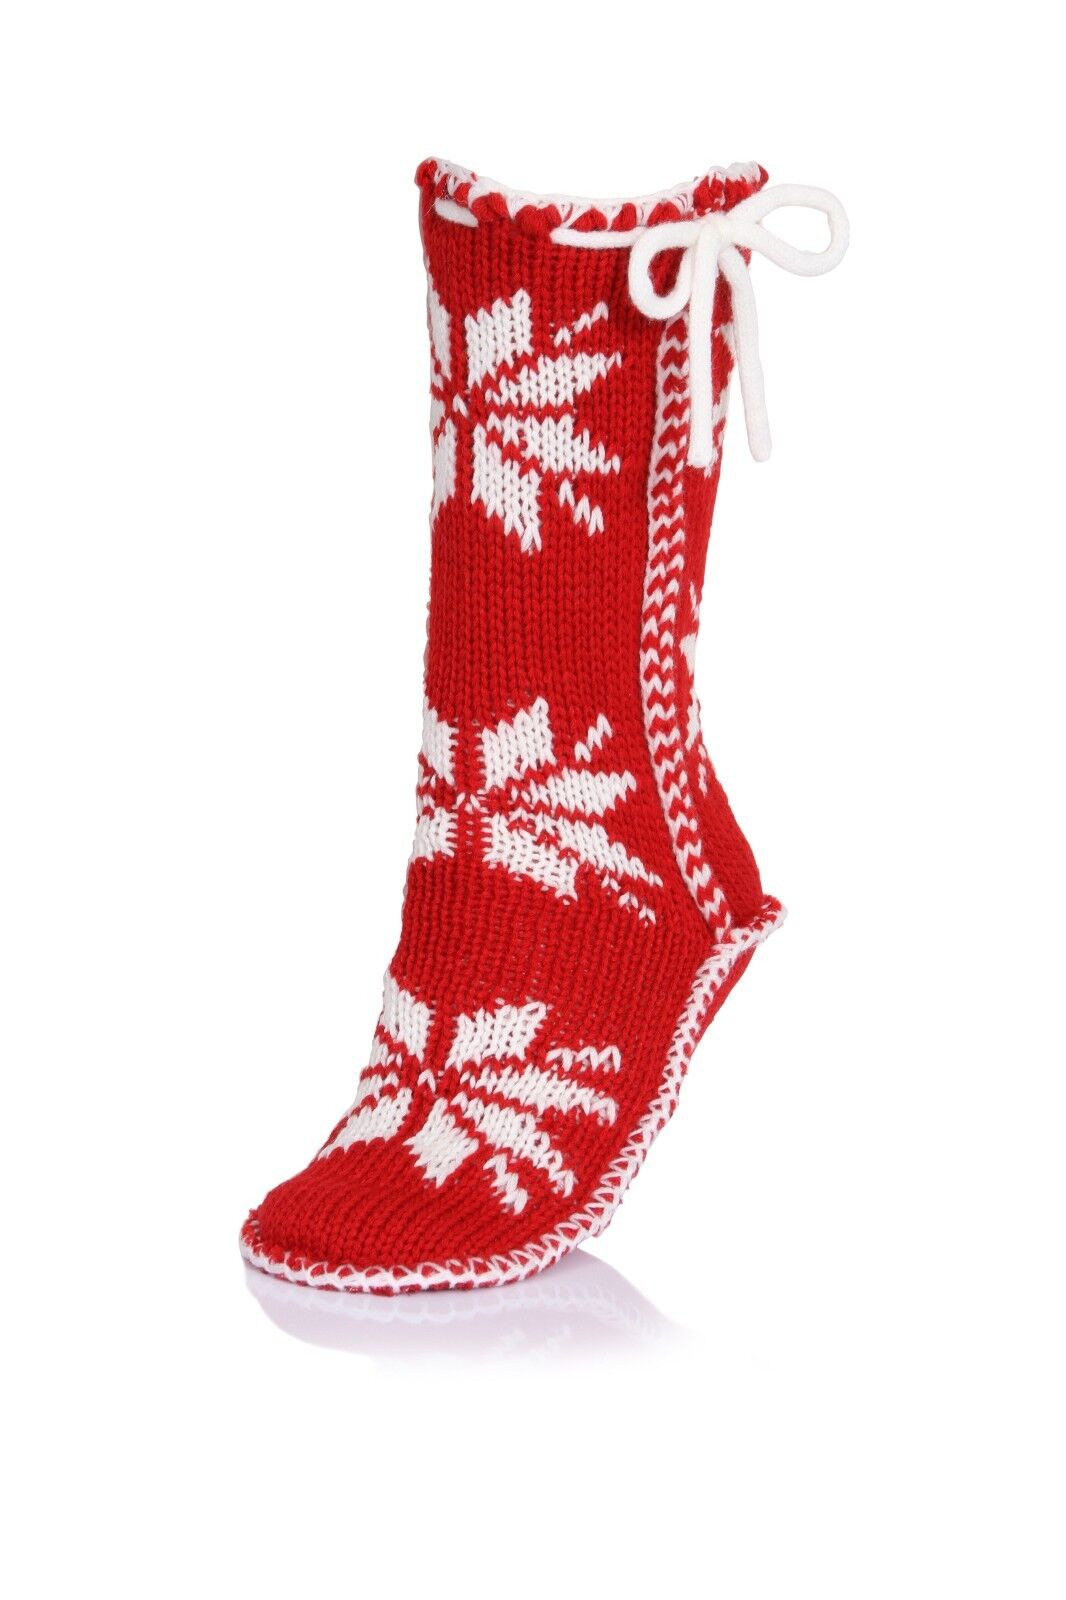 LADIES GIRLS COSY WARM NORDIC DESIGN STITCH DETAIL BOOT SLIPPER SOCKS